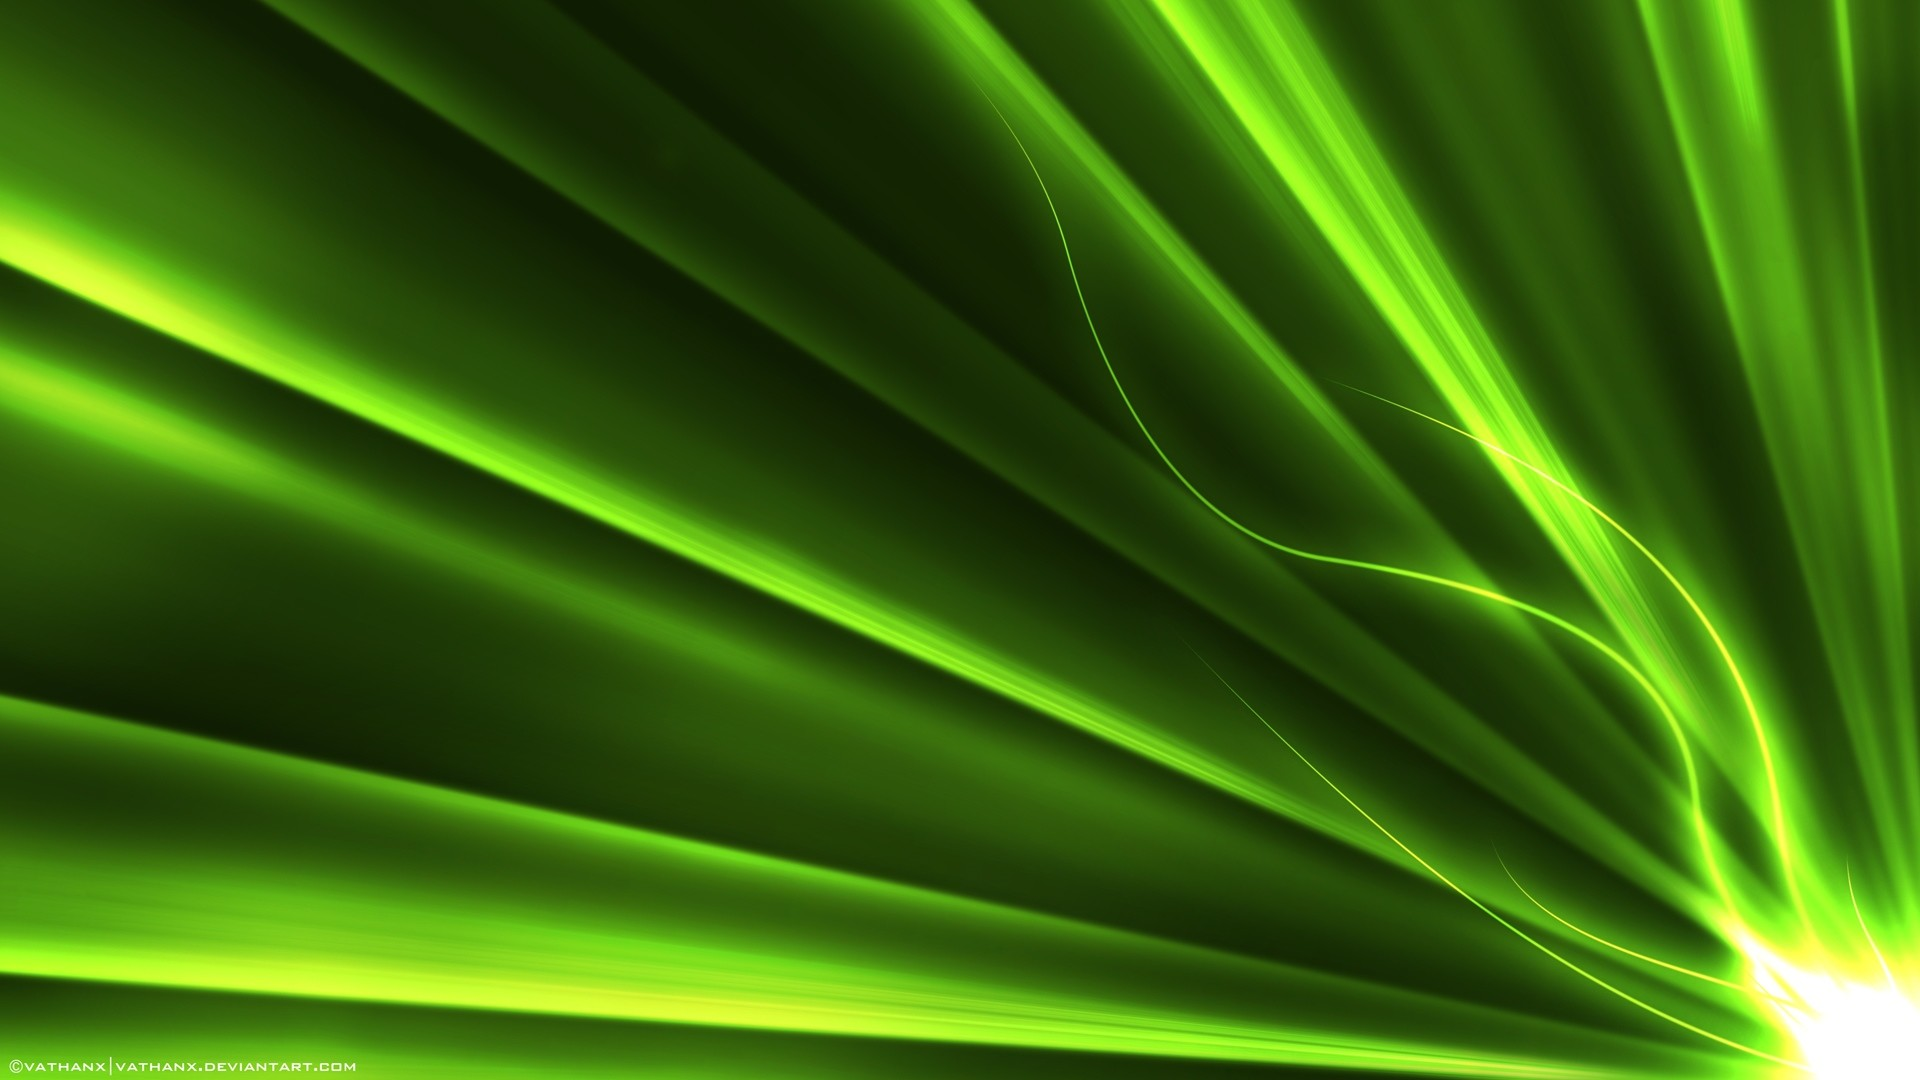 green solid light abstract wallpapers line 4k hd circle shine